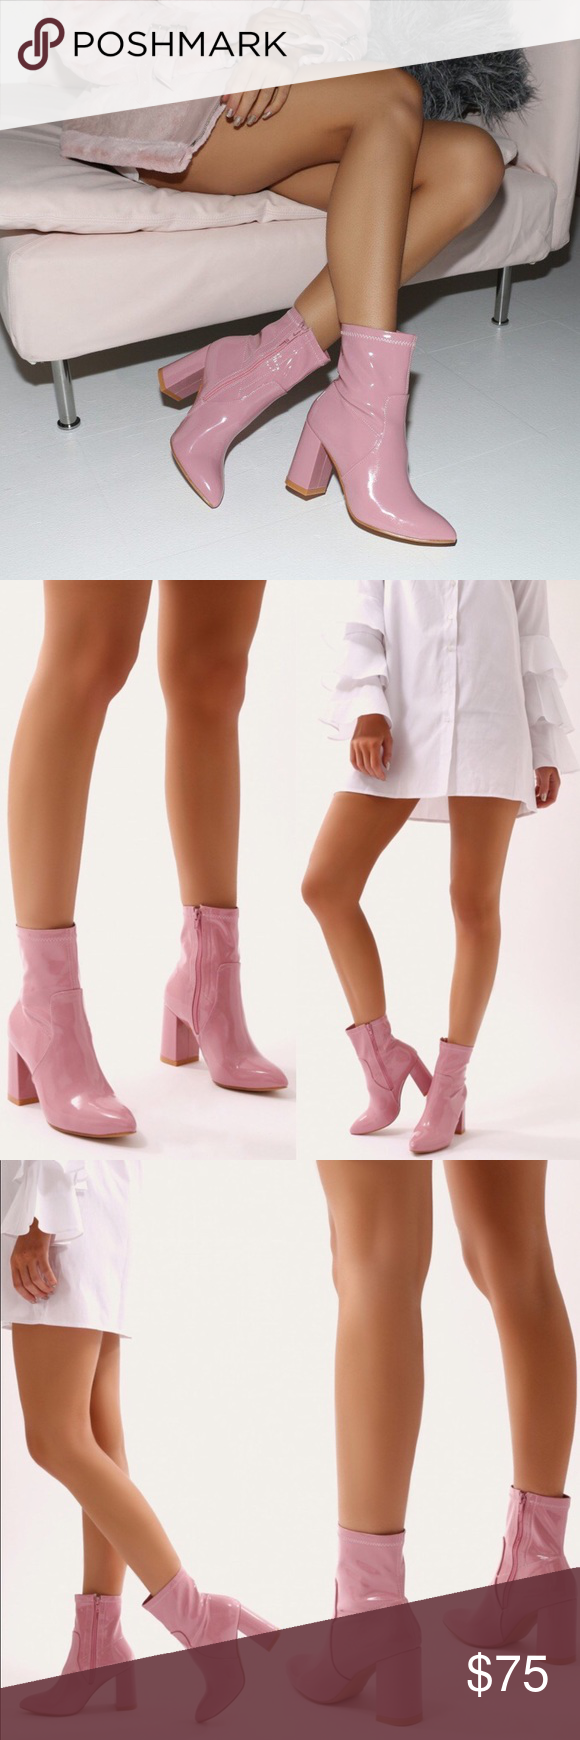 bdc12bc2a1c 🚨RETURNING🚨Public Desire Pink Patent Ankle Boots 💘NWT💘 Public Desire ' Raya' Pointed Toe Ankle Boots in Pink Patent. Sock fit. Chunky heel.